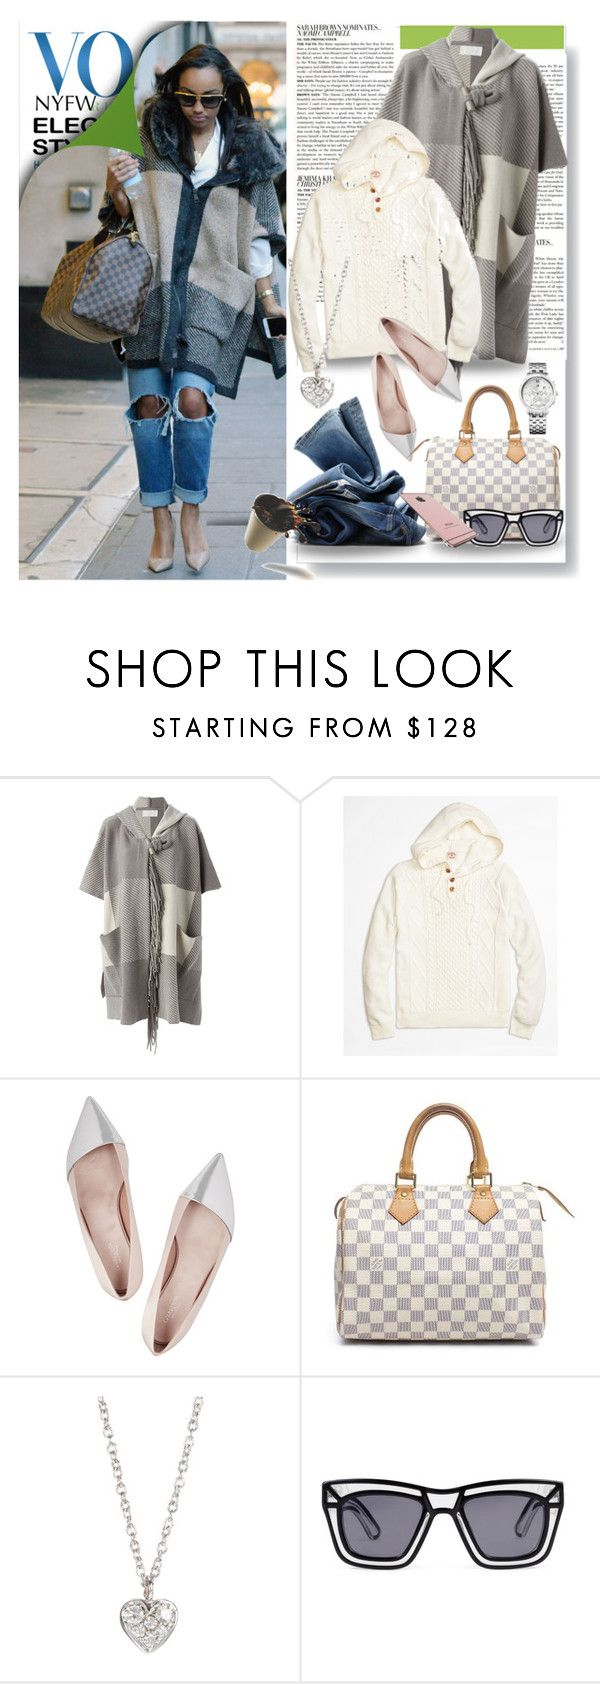 """""""street style"""" by straylittle ❤ liked on Polyvore featuring McGinn, Chloé, Brooks Brothers, Giambattista Valli, Louis Vuitton, H&M, Finn, Ksubi, Tommy Hilfiger and women's clothing"""